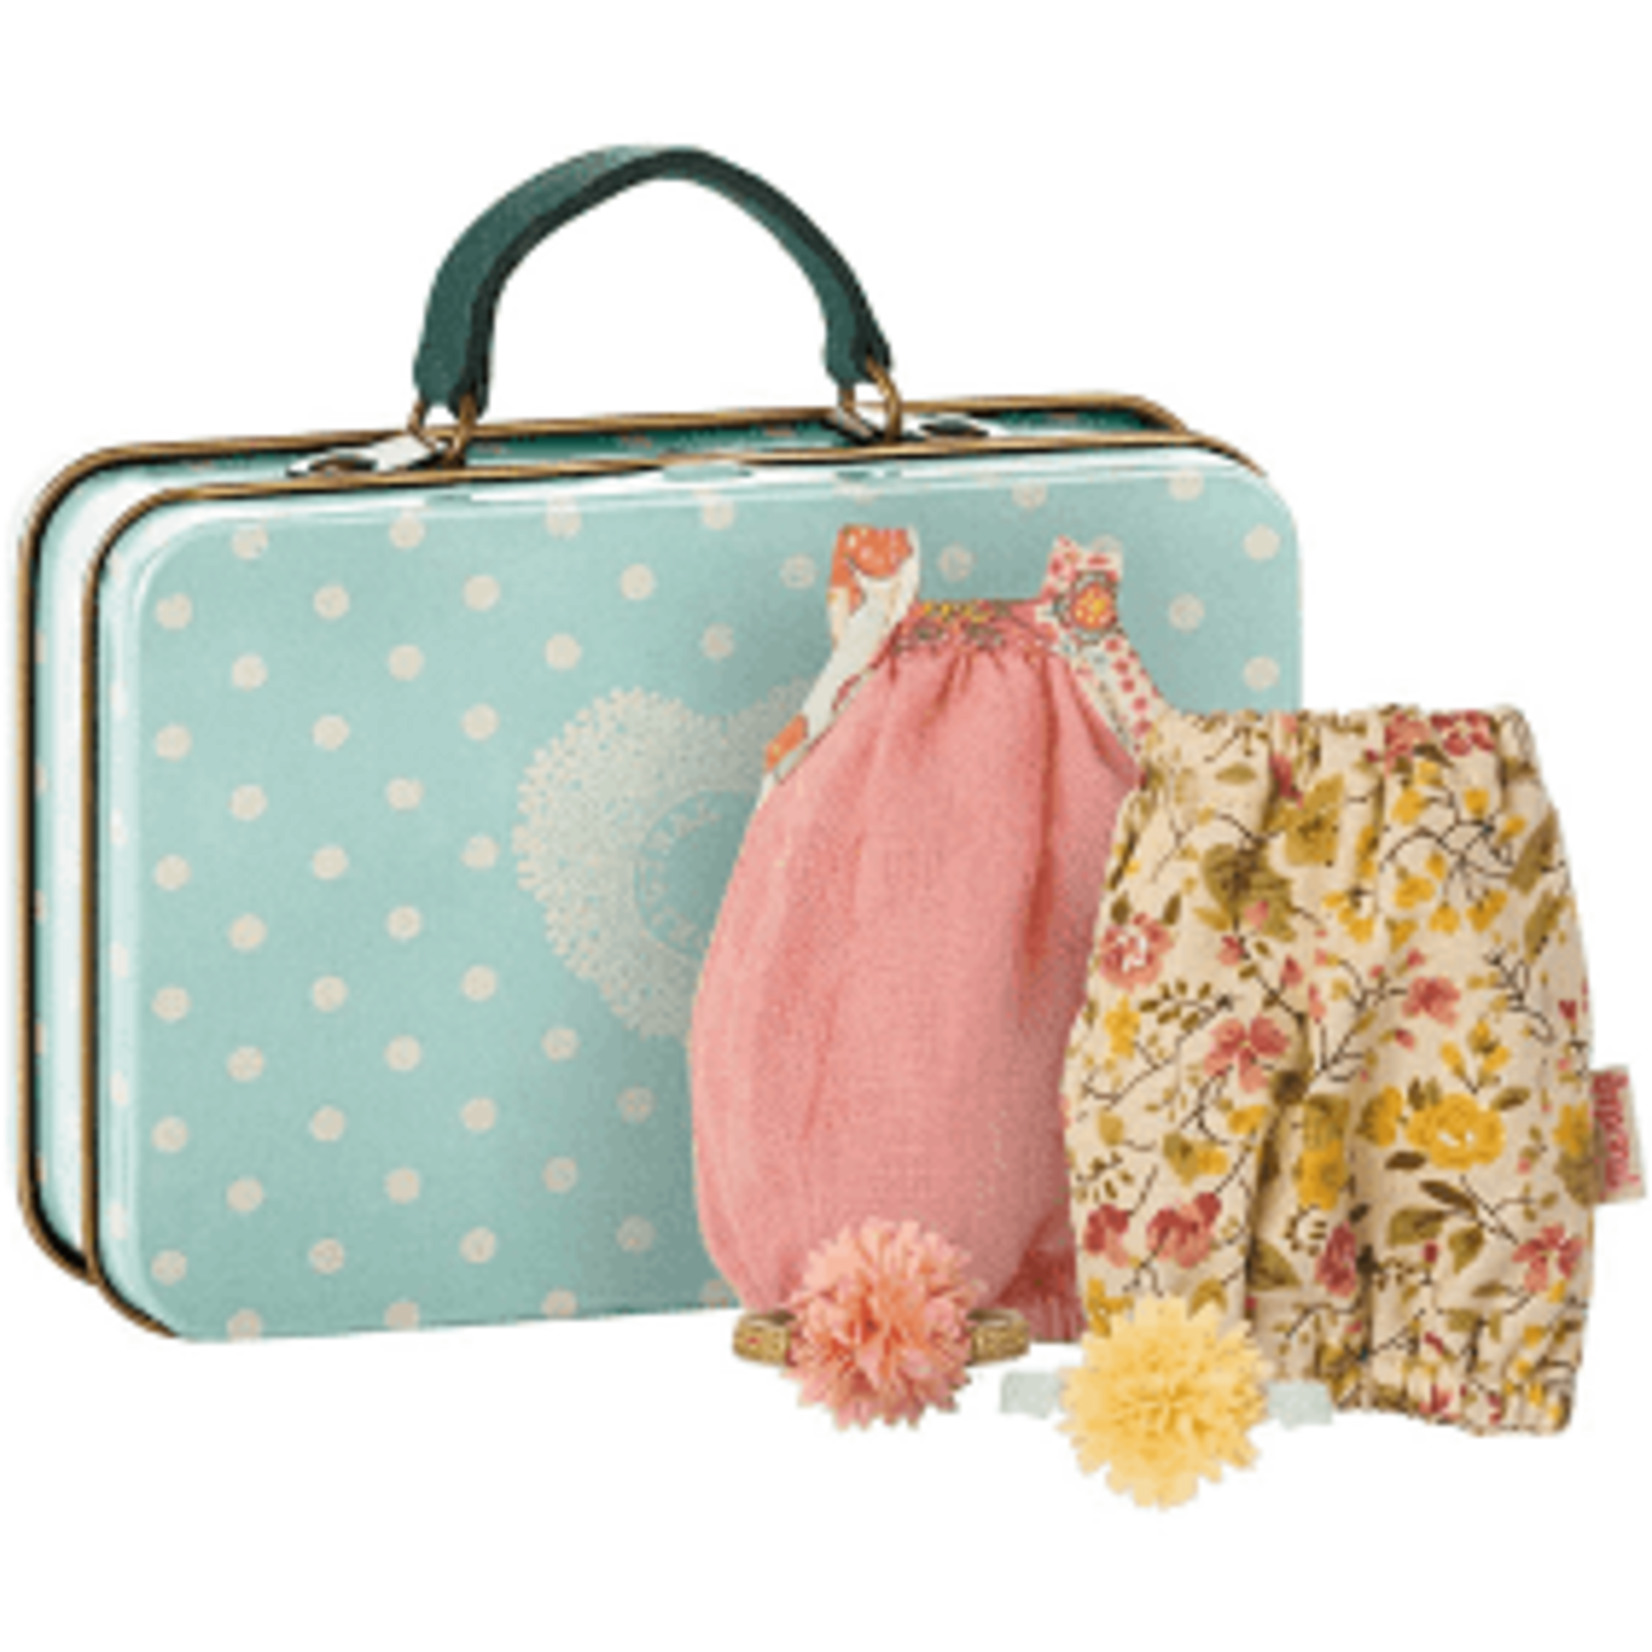 MAILEG Maileg Suitcase with 2 dresses